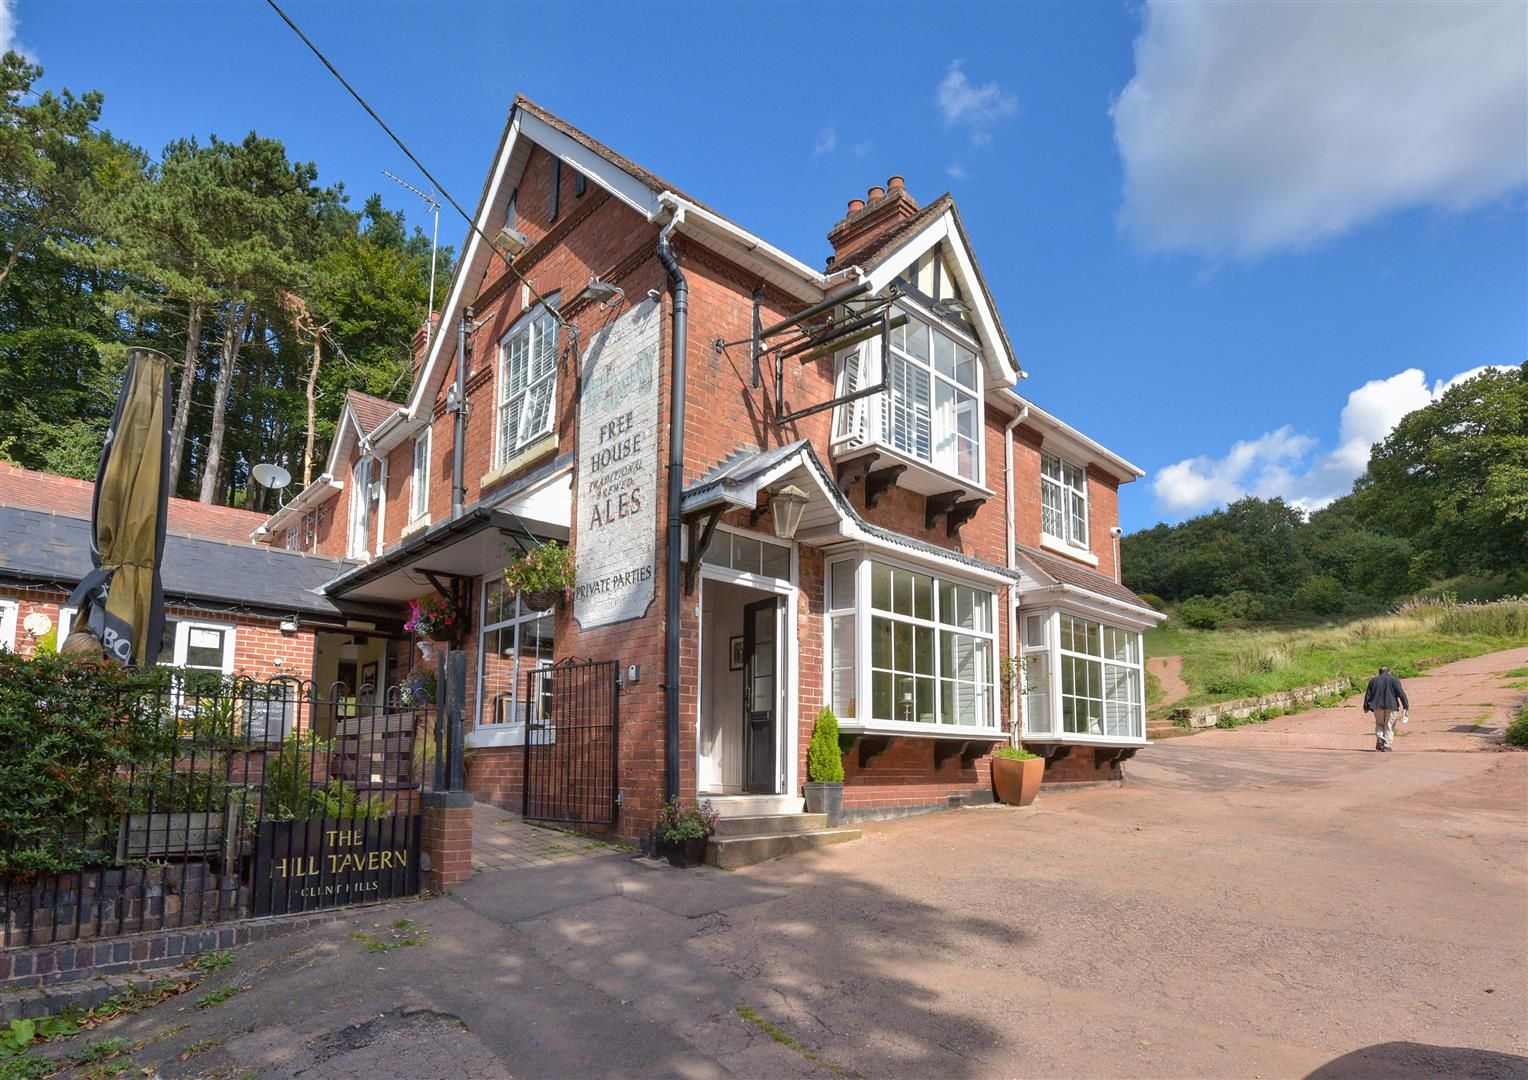 2 bed semi-detached for sale in Clent 19